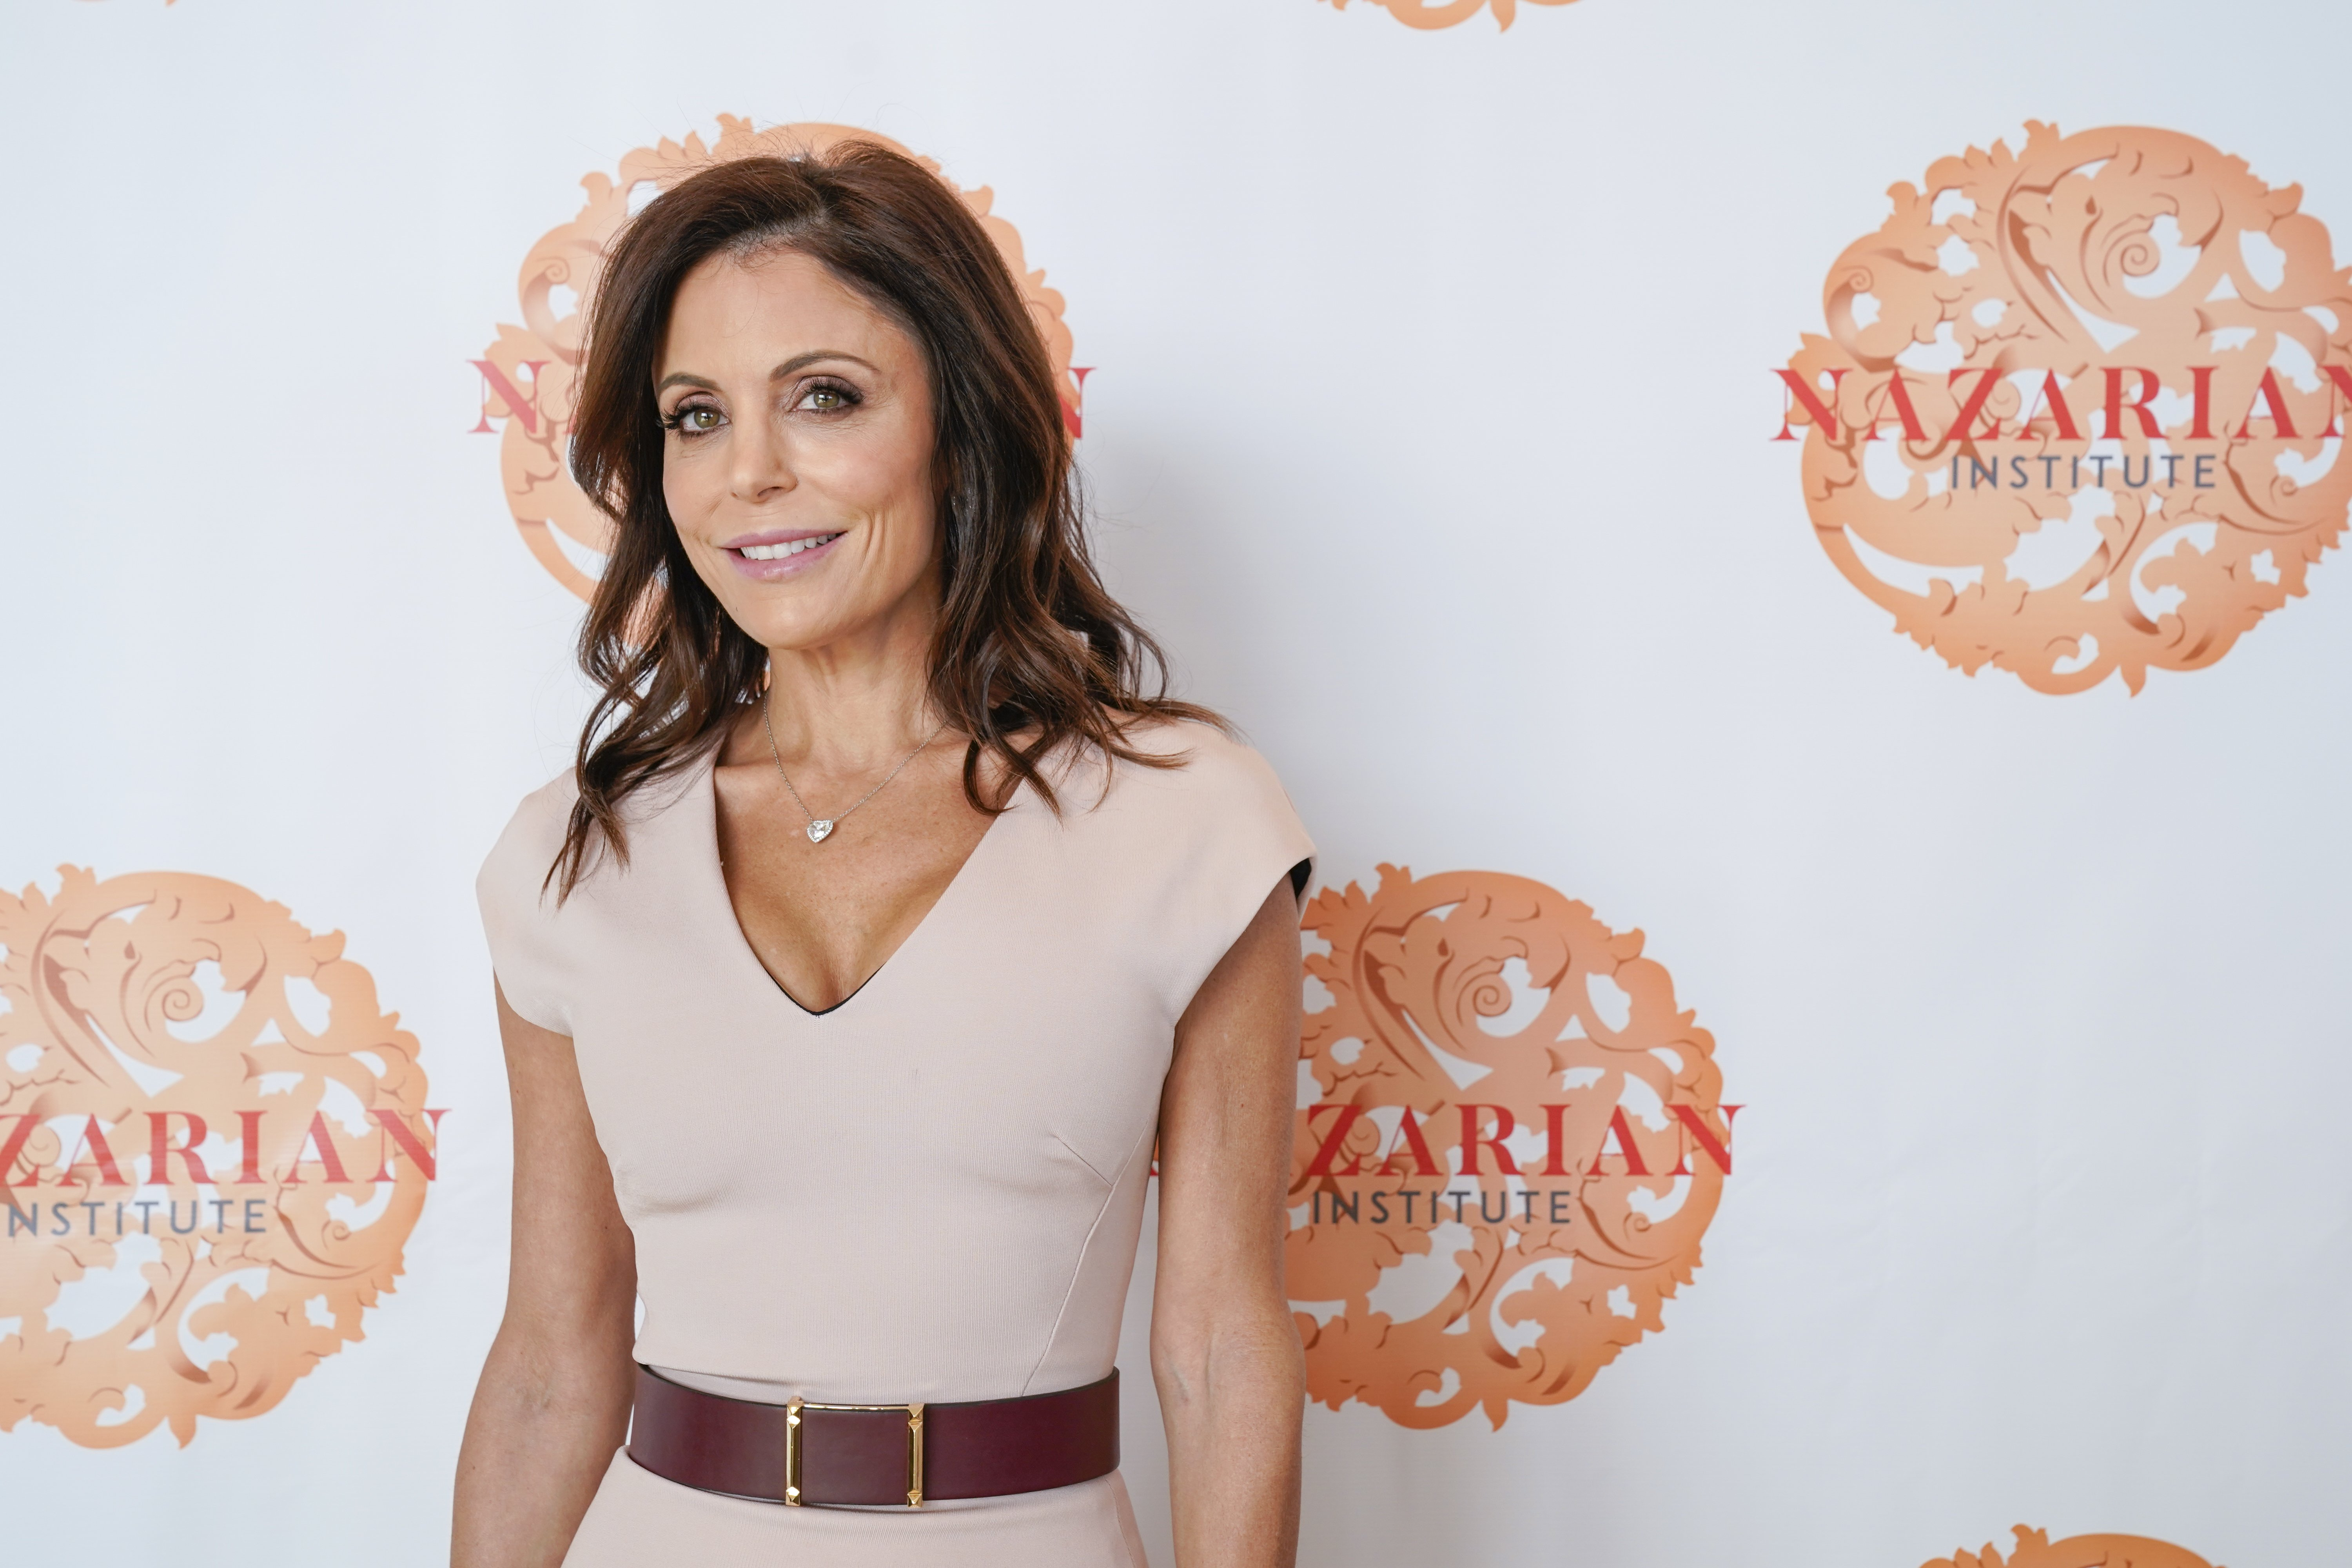 Bethenny Frankel pictured at day one of the 2019 Nazarian Institute, Los Angeles. | Photo: Getty Images